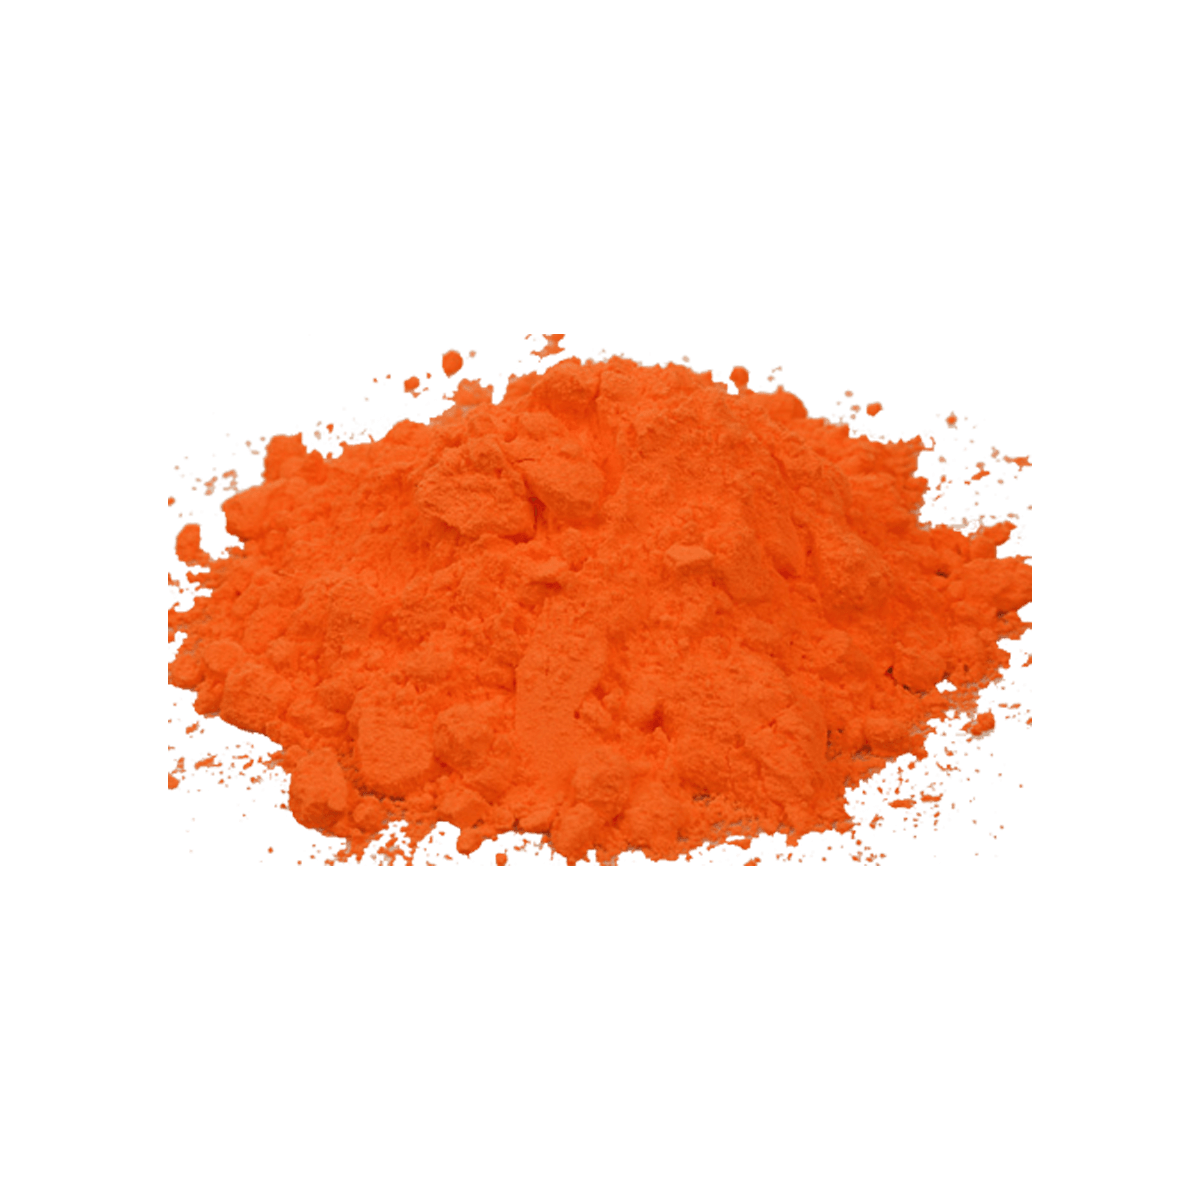 Orange smoke png. Image with transparent background